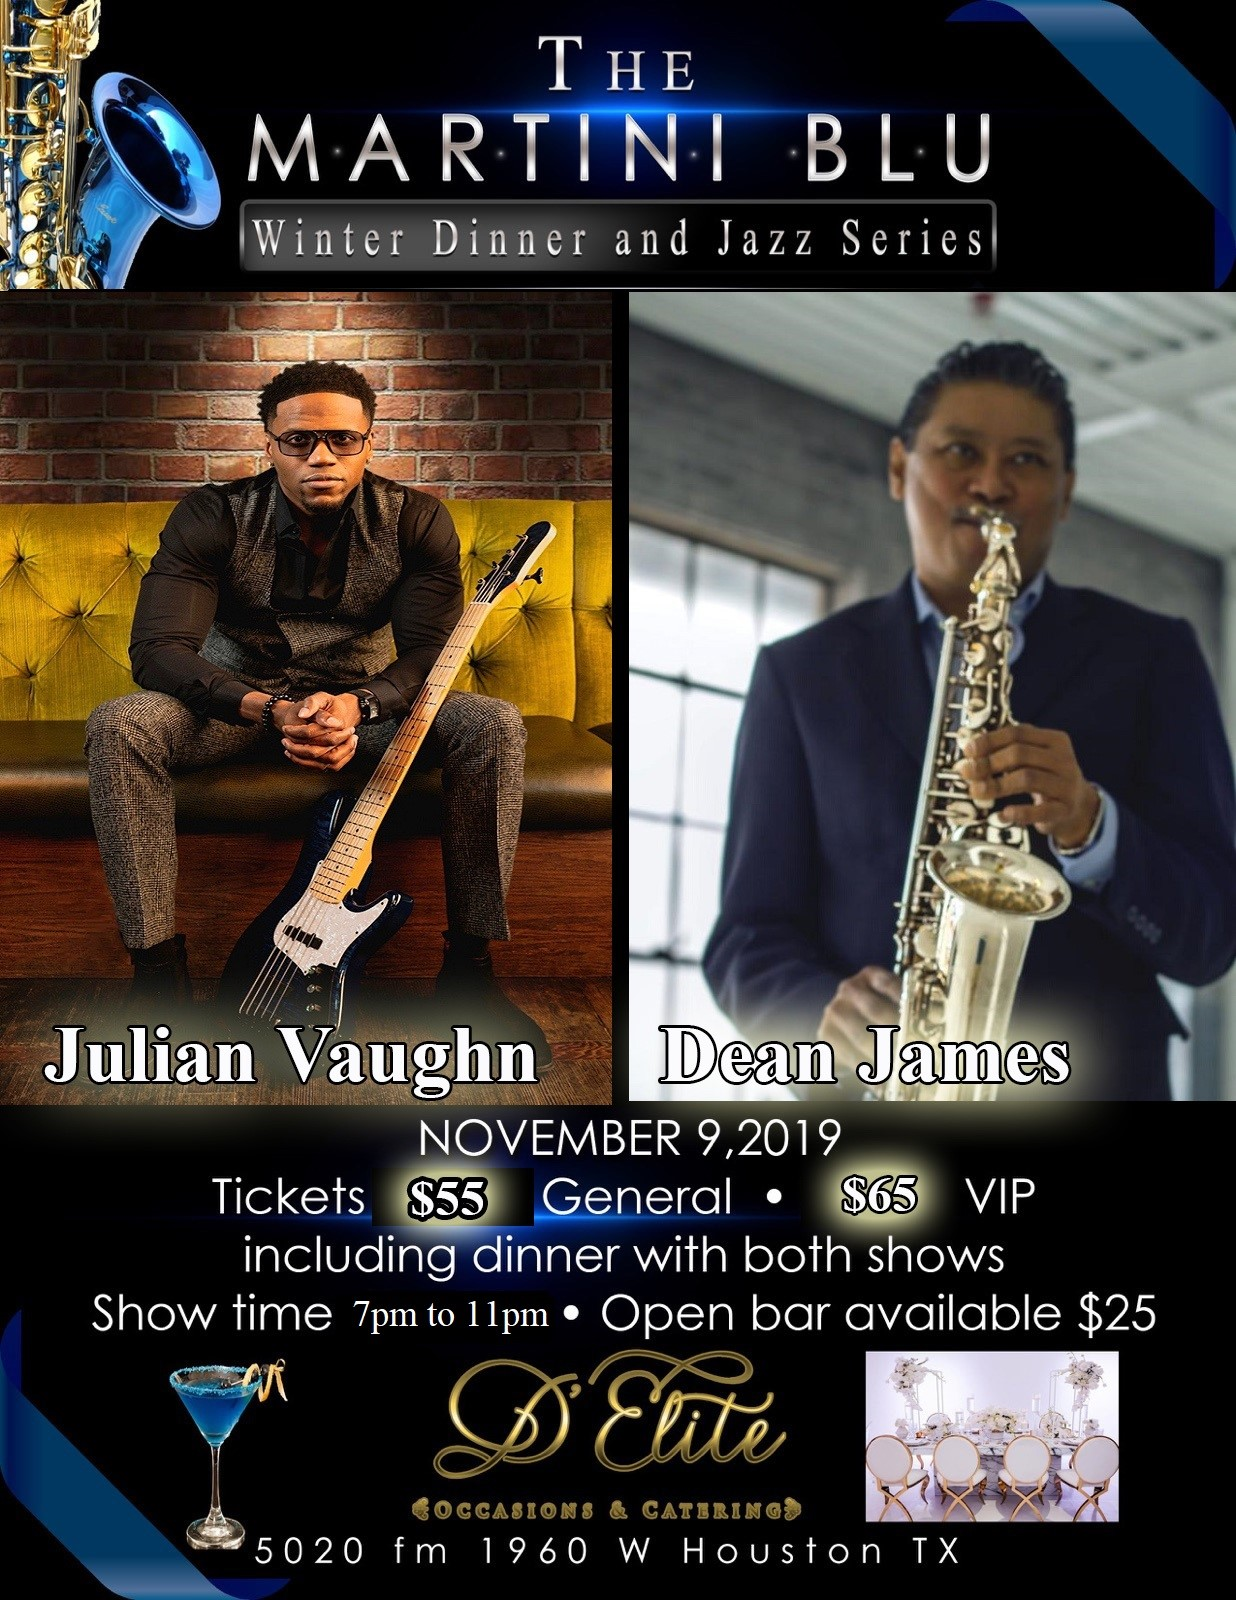 Julian Vaughn and Saxophonist Dean James Martini Blu Winter Jazz series on Nov 09, 20:00@D Elite Banquet Event Hall - Buy tickets and Get information on Martinibluhouston.com